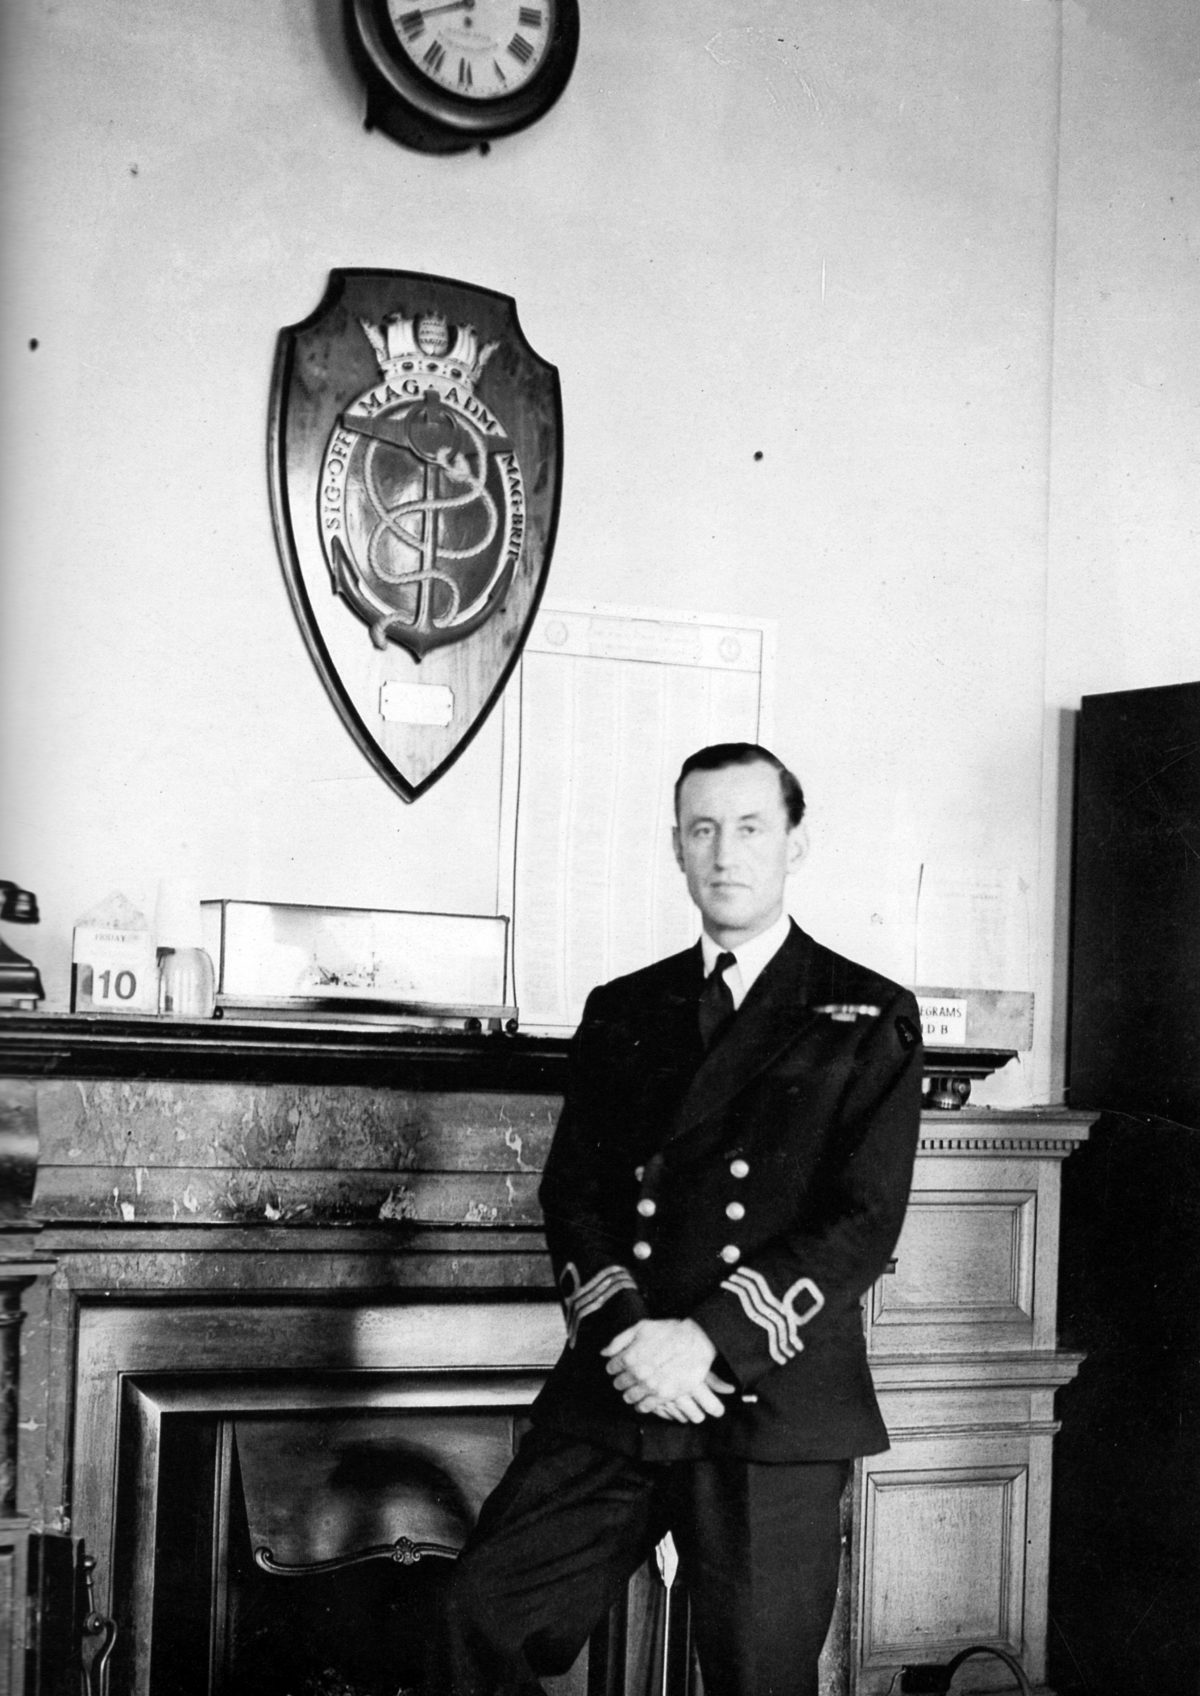 Ian Fleming in Room 39 at the Admiralty during WW2